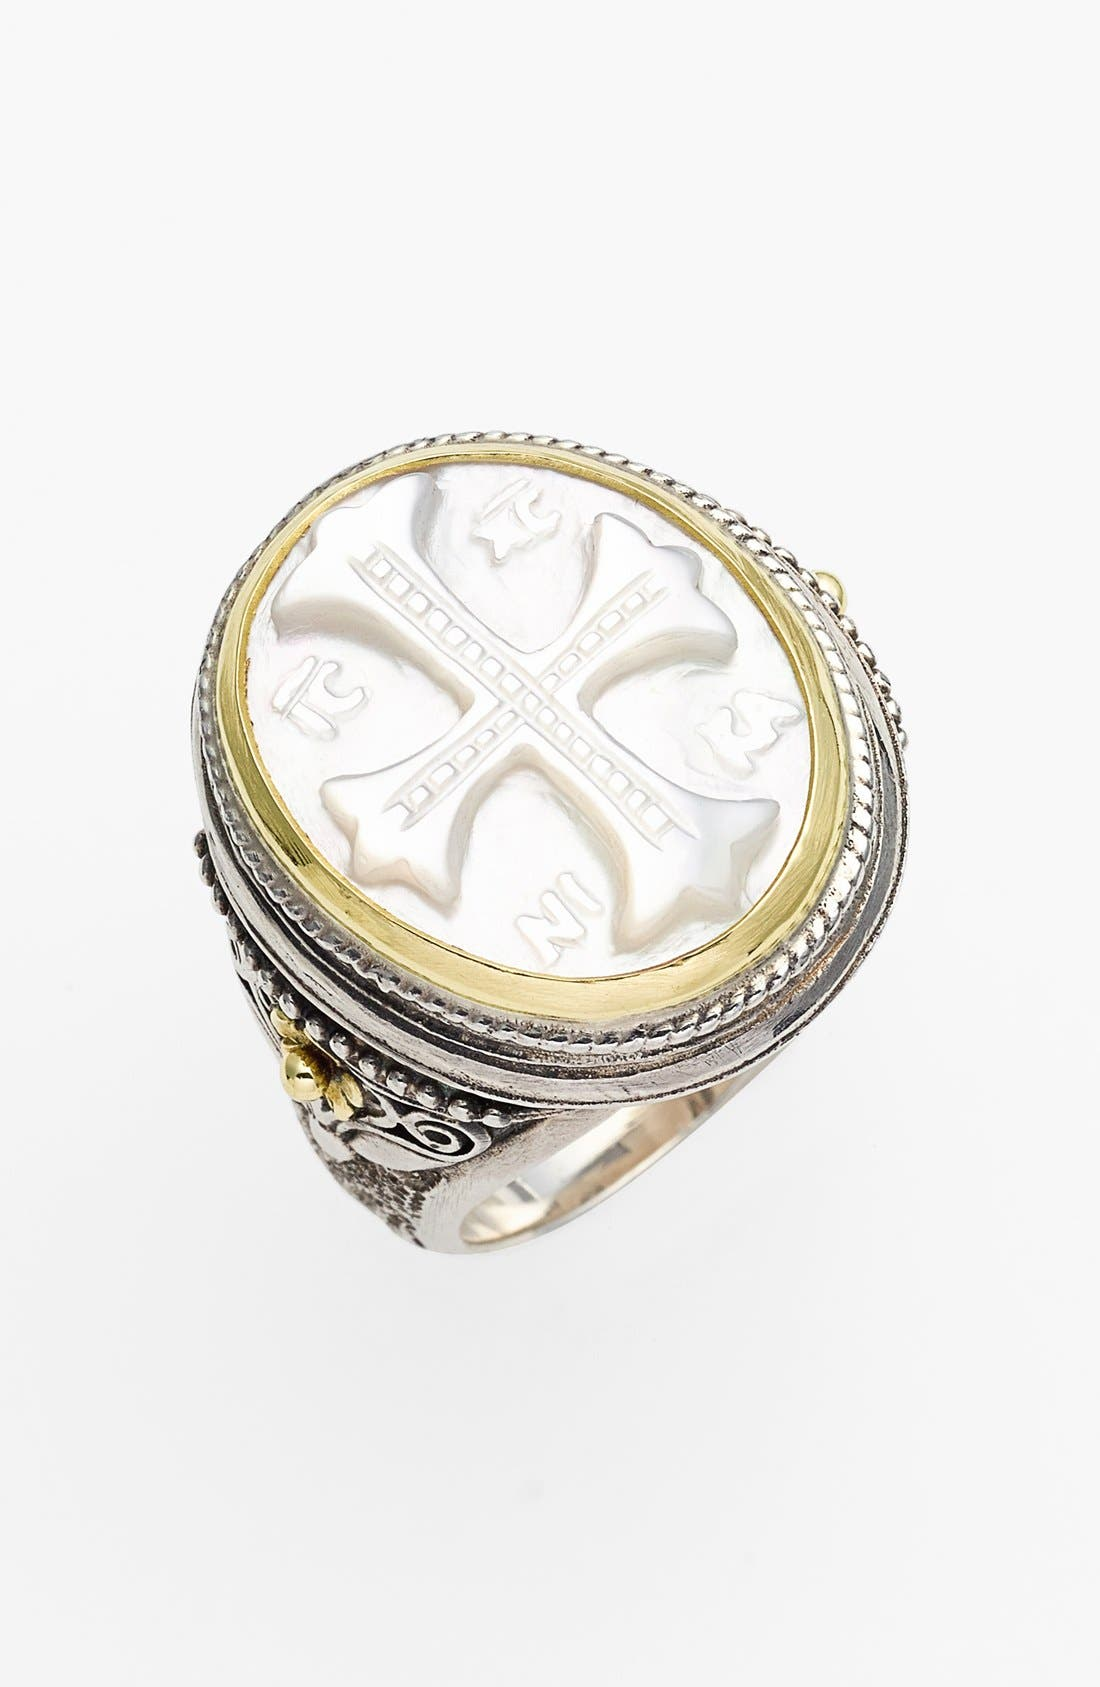 Main Image - Konstantino 'Athena' Mother of Pearl Signet Ring